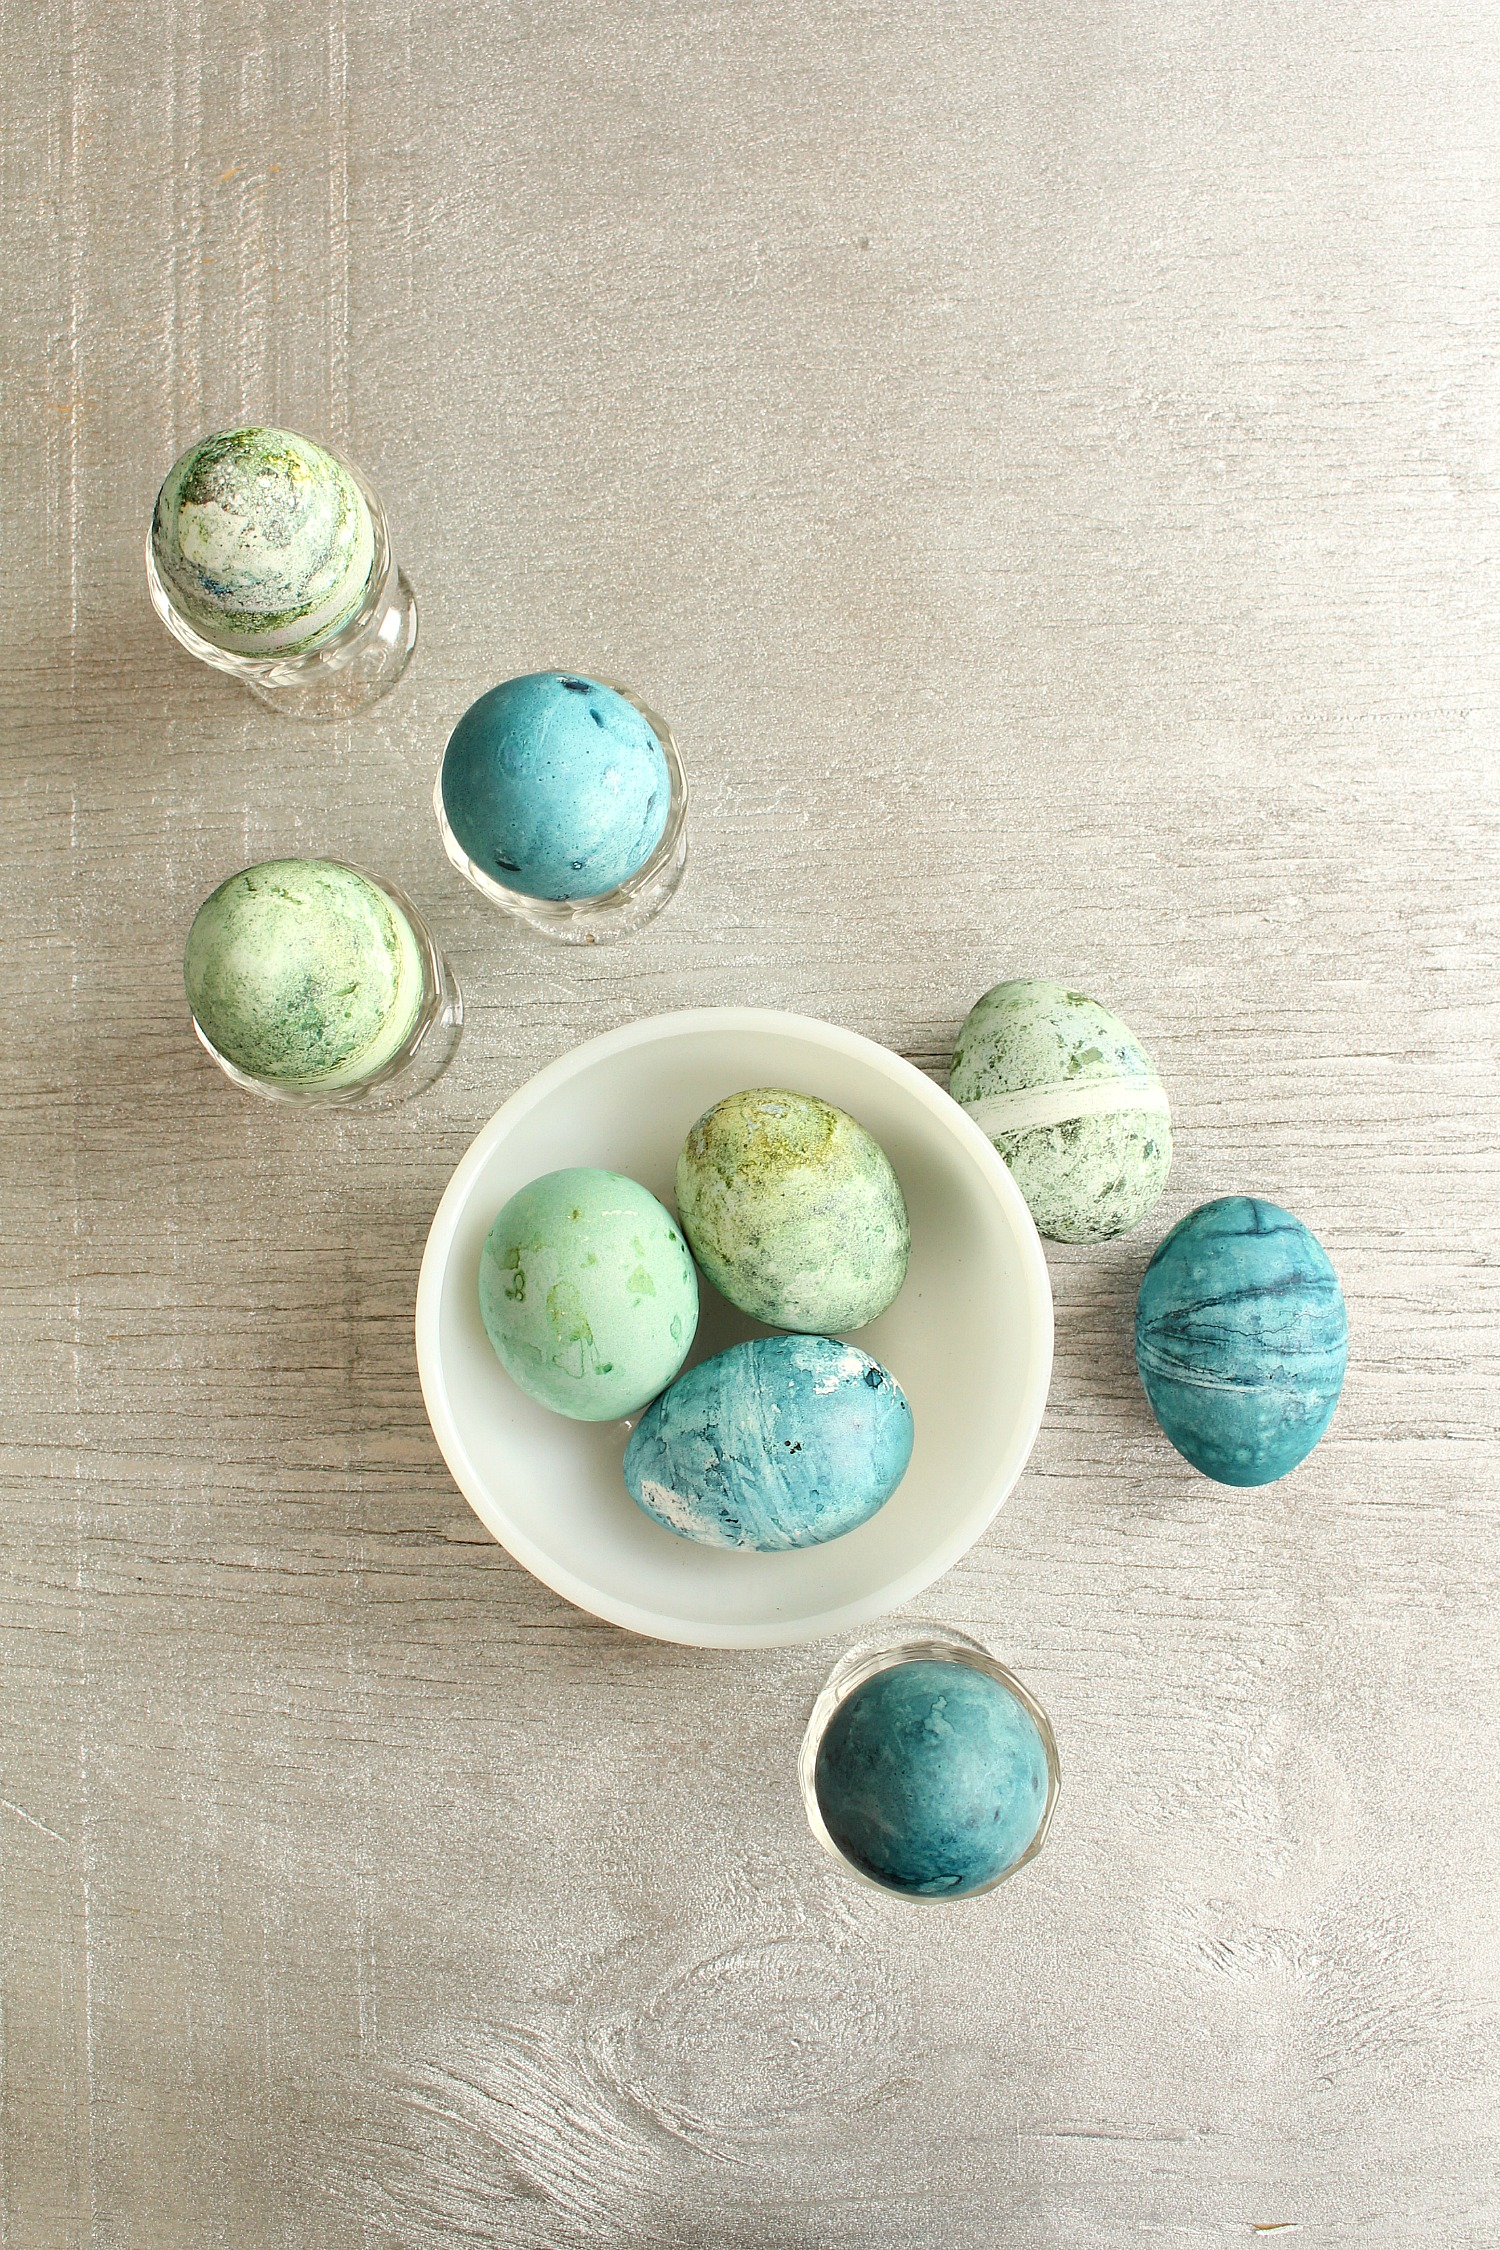 Cabbage Dyed Eggs